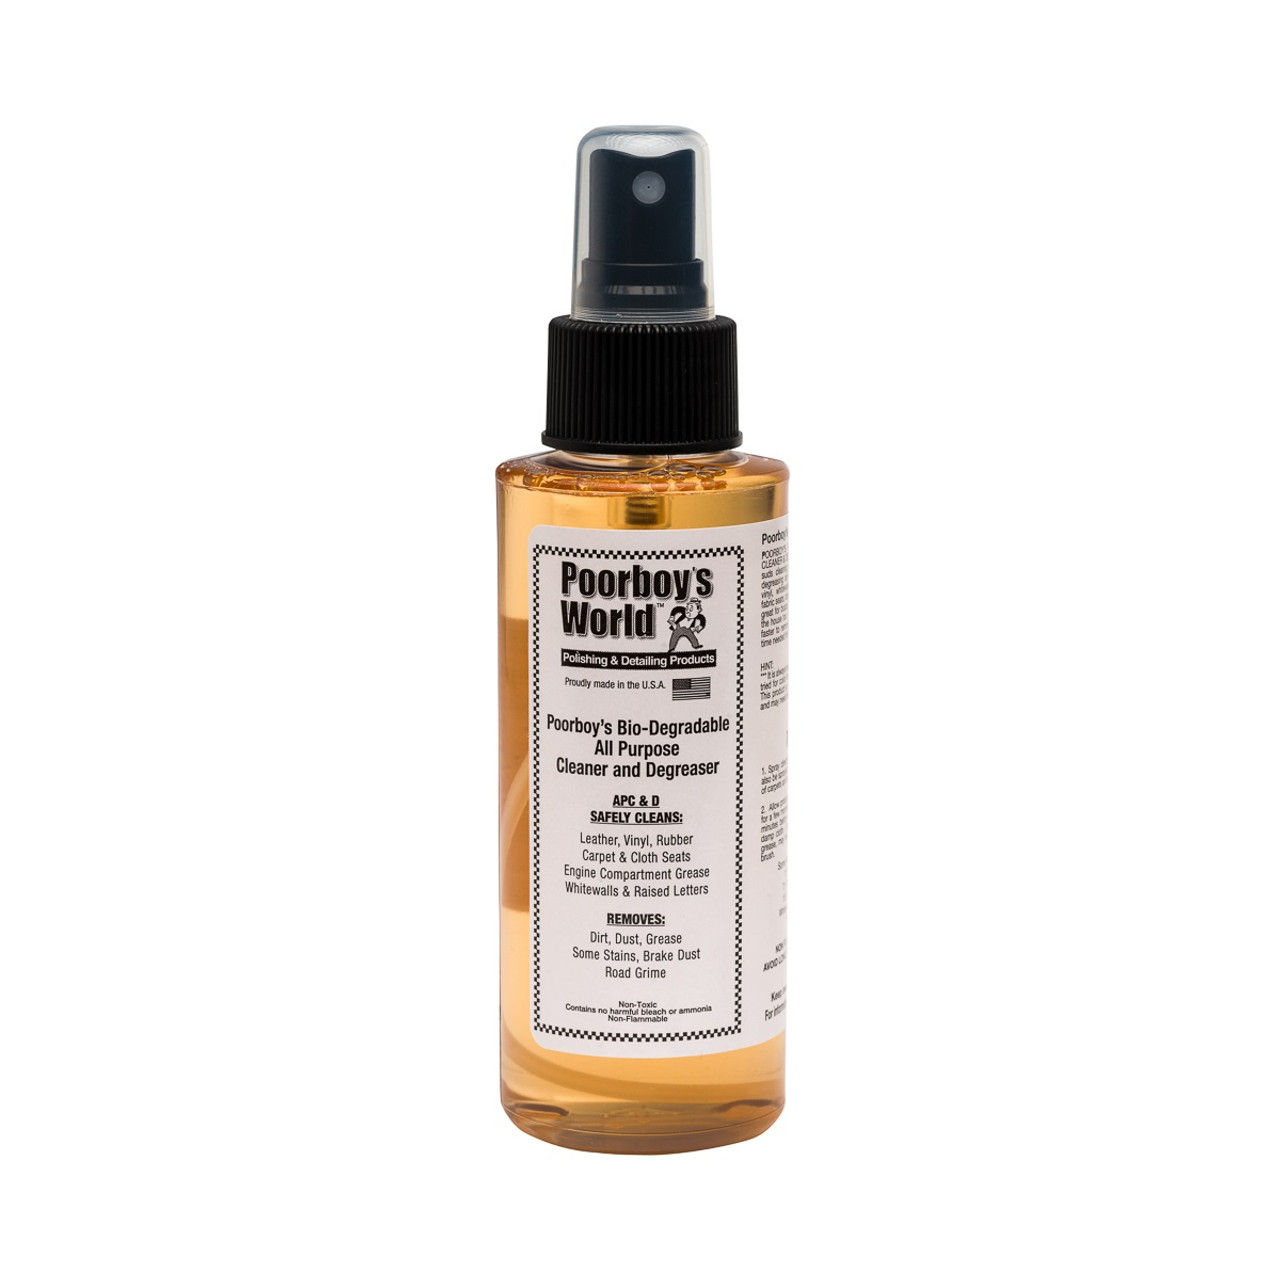 Poorboy's World All Purpose Cleaner 4oz - Trial Size - Ready to Use